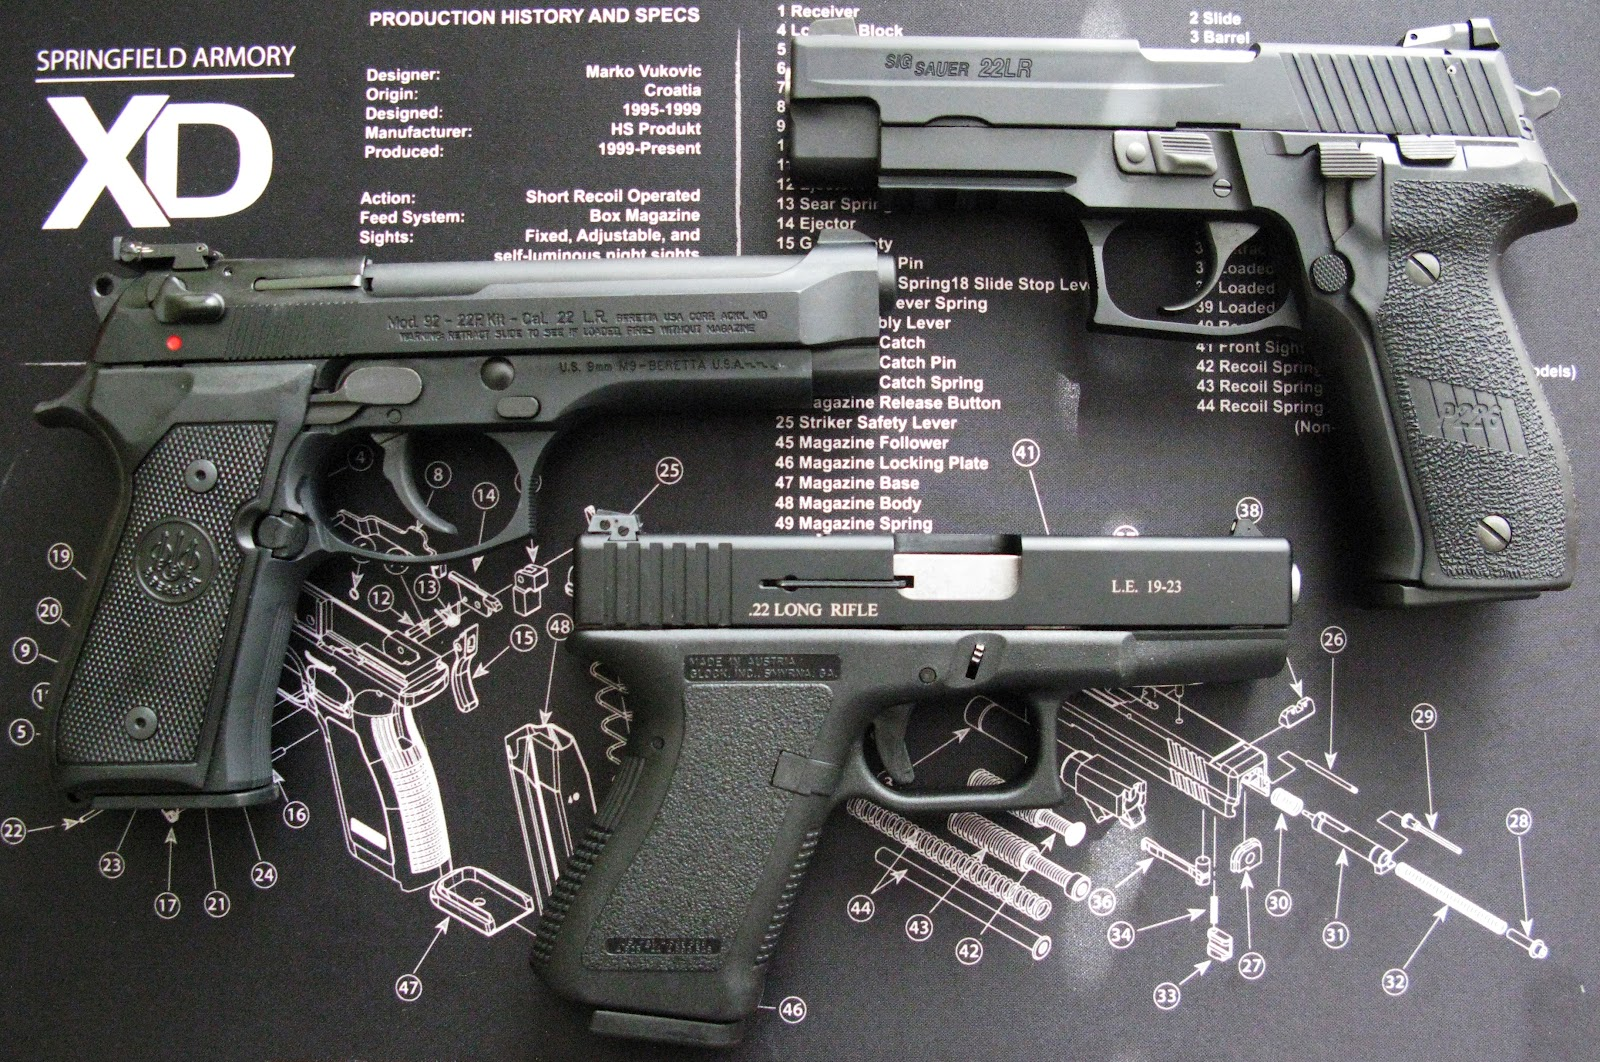 22 Conversion Kit Review for the Beretta 92FS/M9, Sig P226